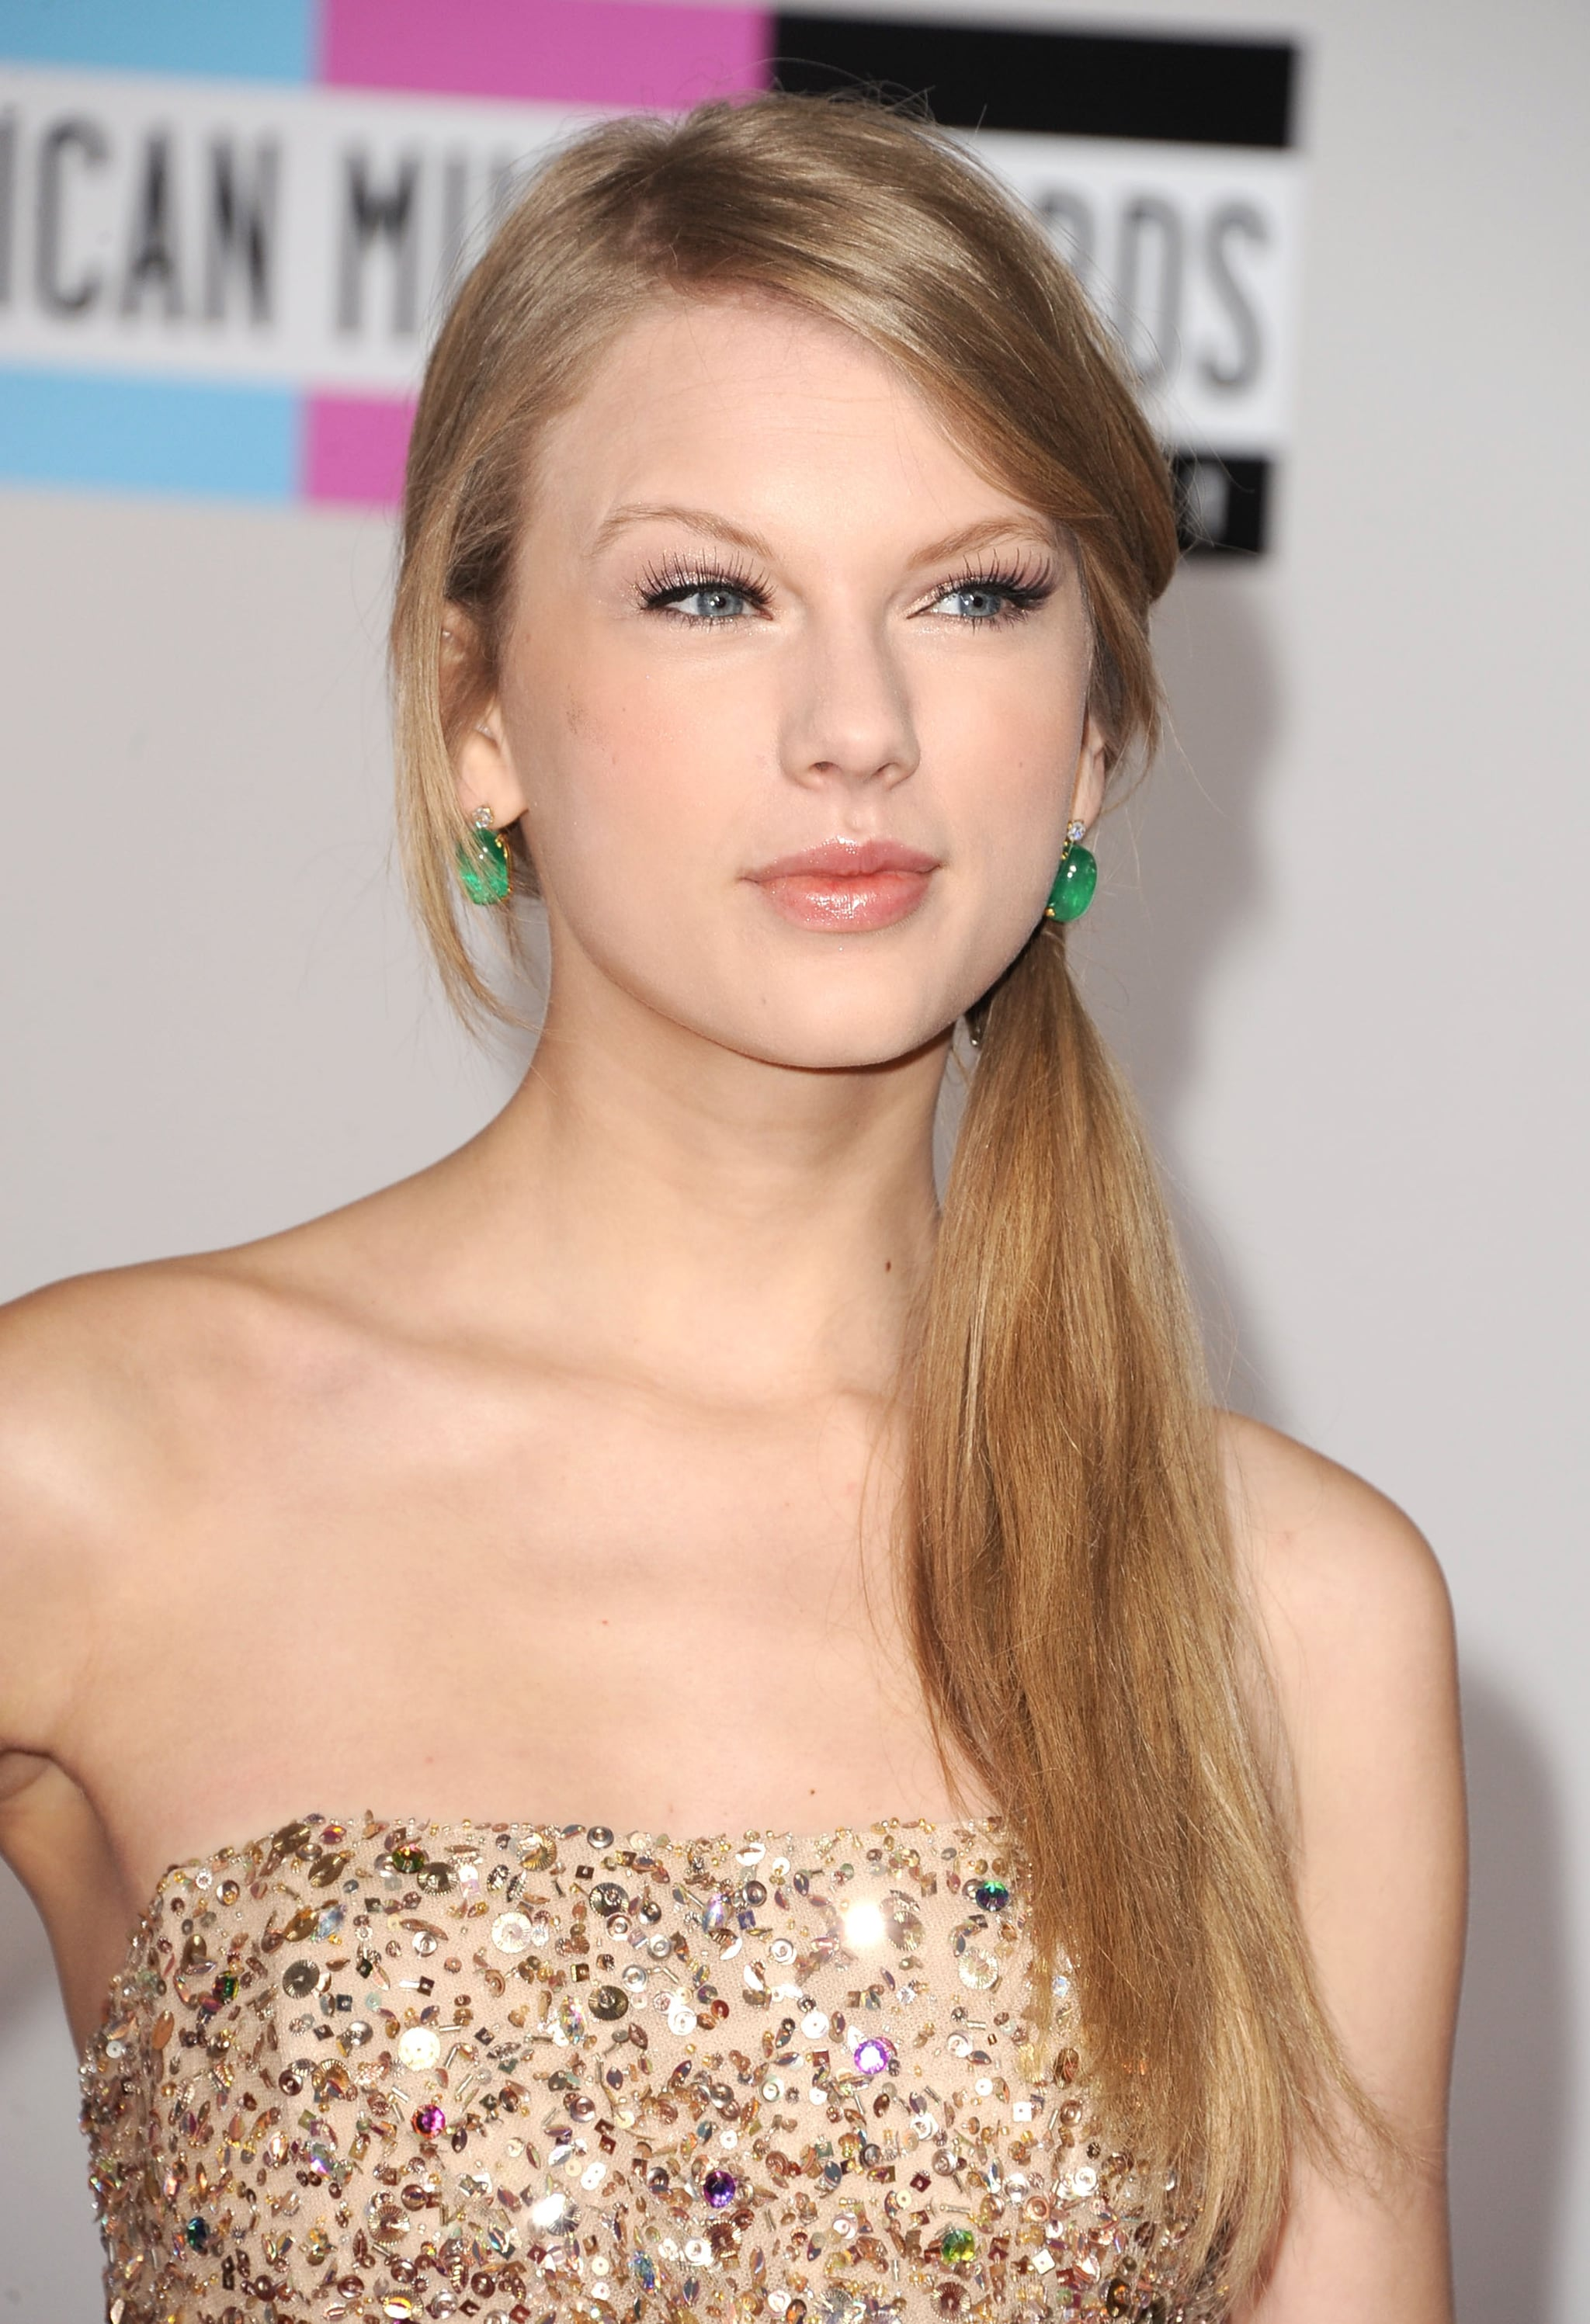 Taylor Swift showed off her green earrings at the AMAs.